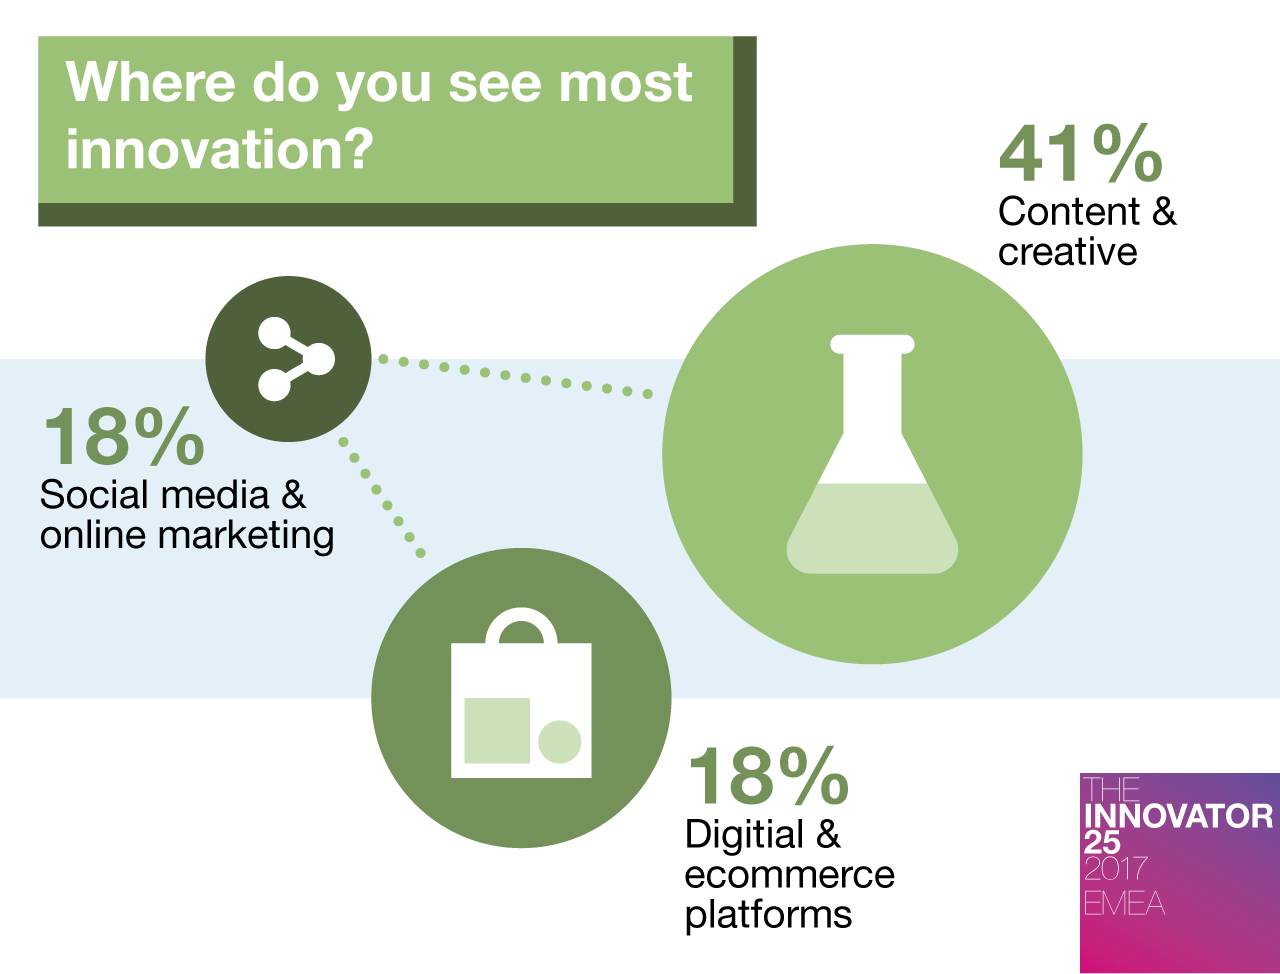 Innovator 25 EMEA - Where do you see most innovation